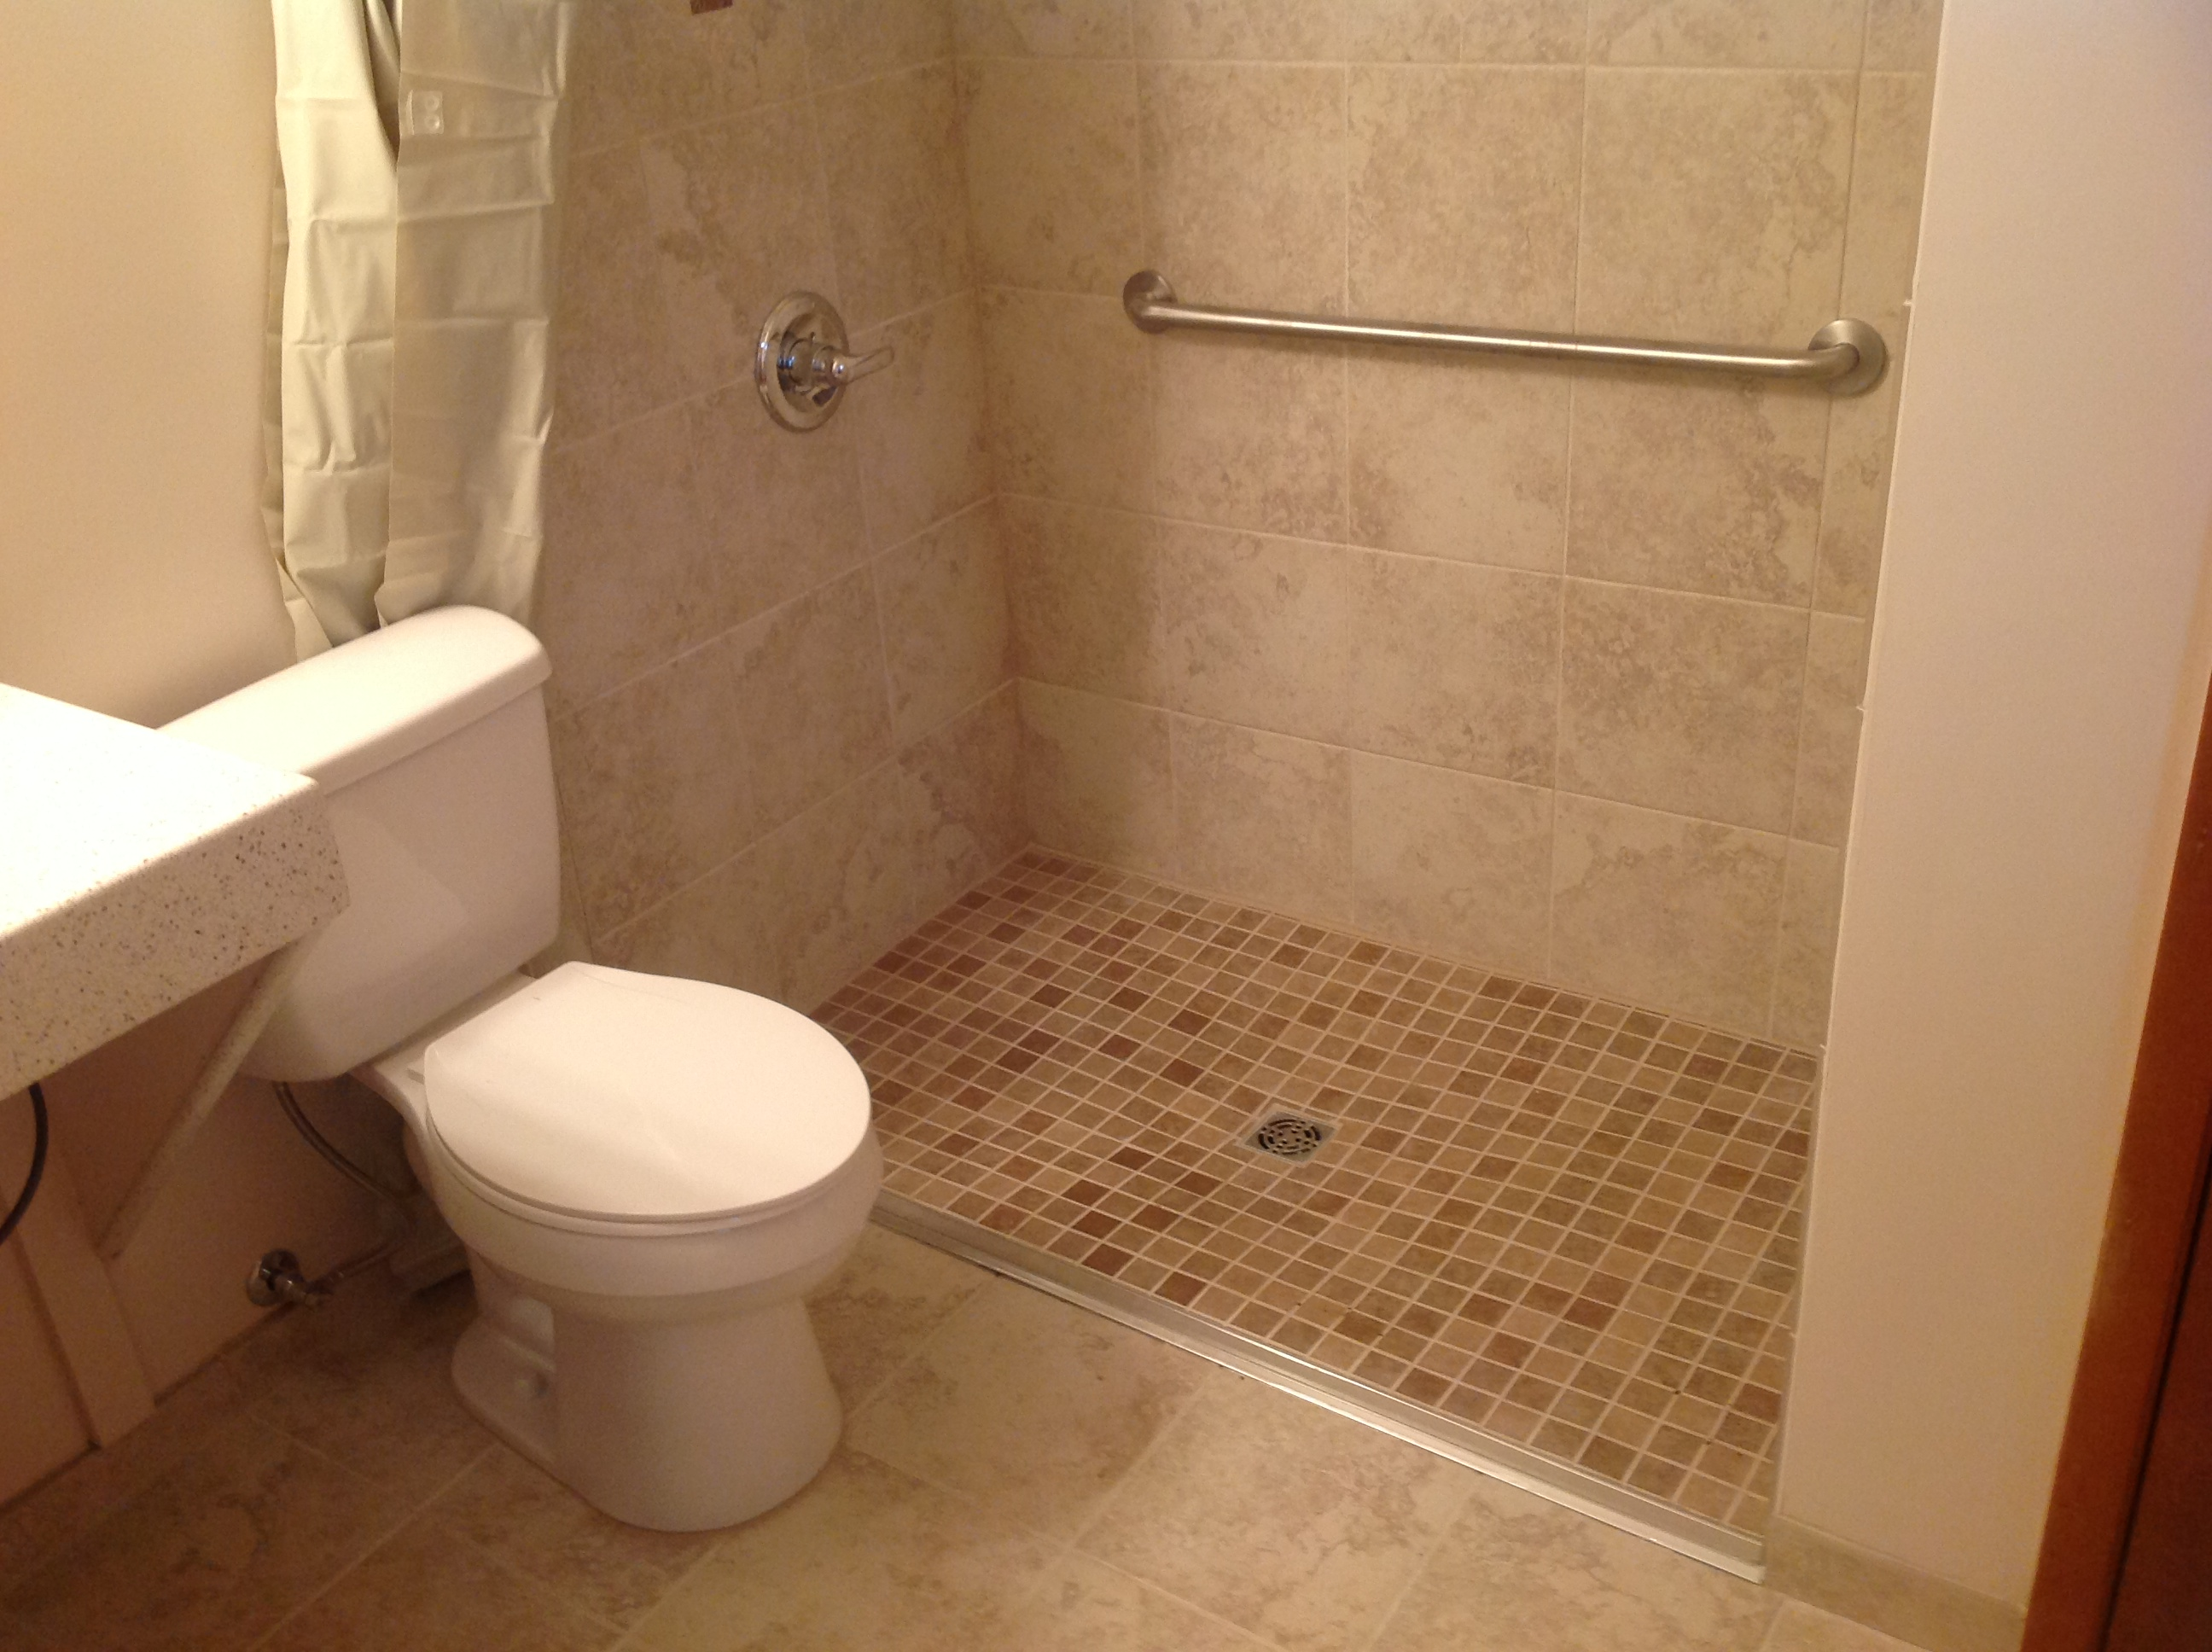 Handicap Bathroom Remodel Handicap Accessible Bathroom  Guyson Construction  Roofing .